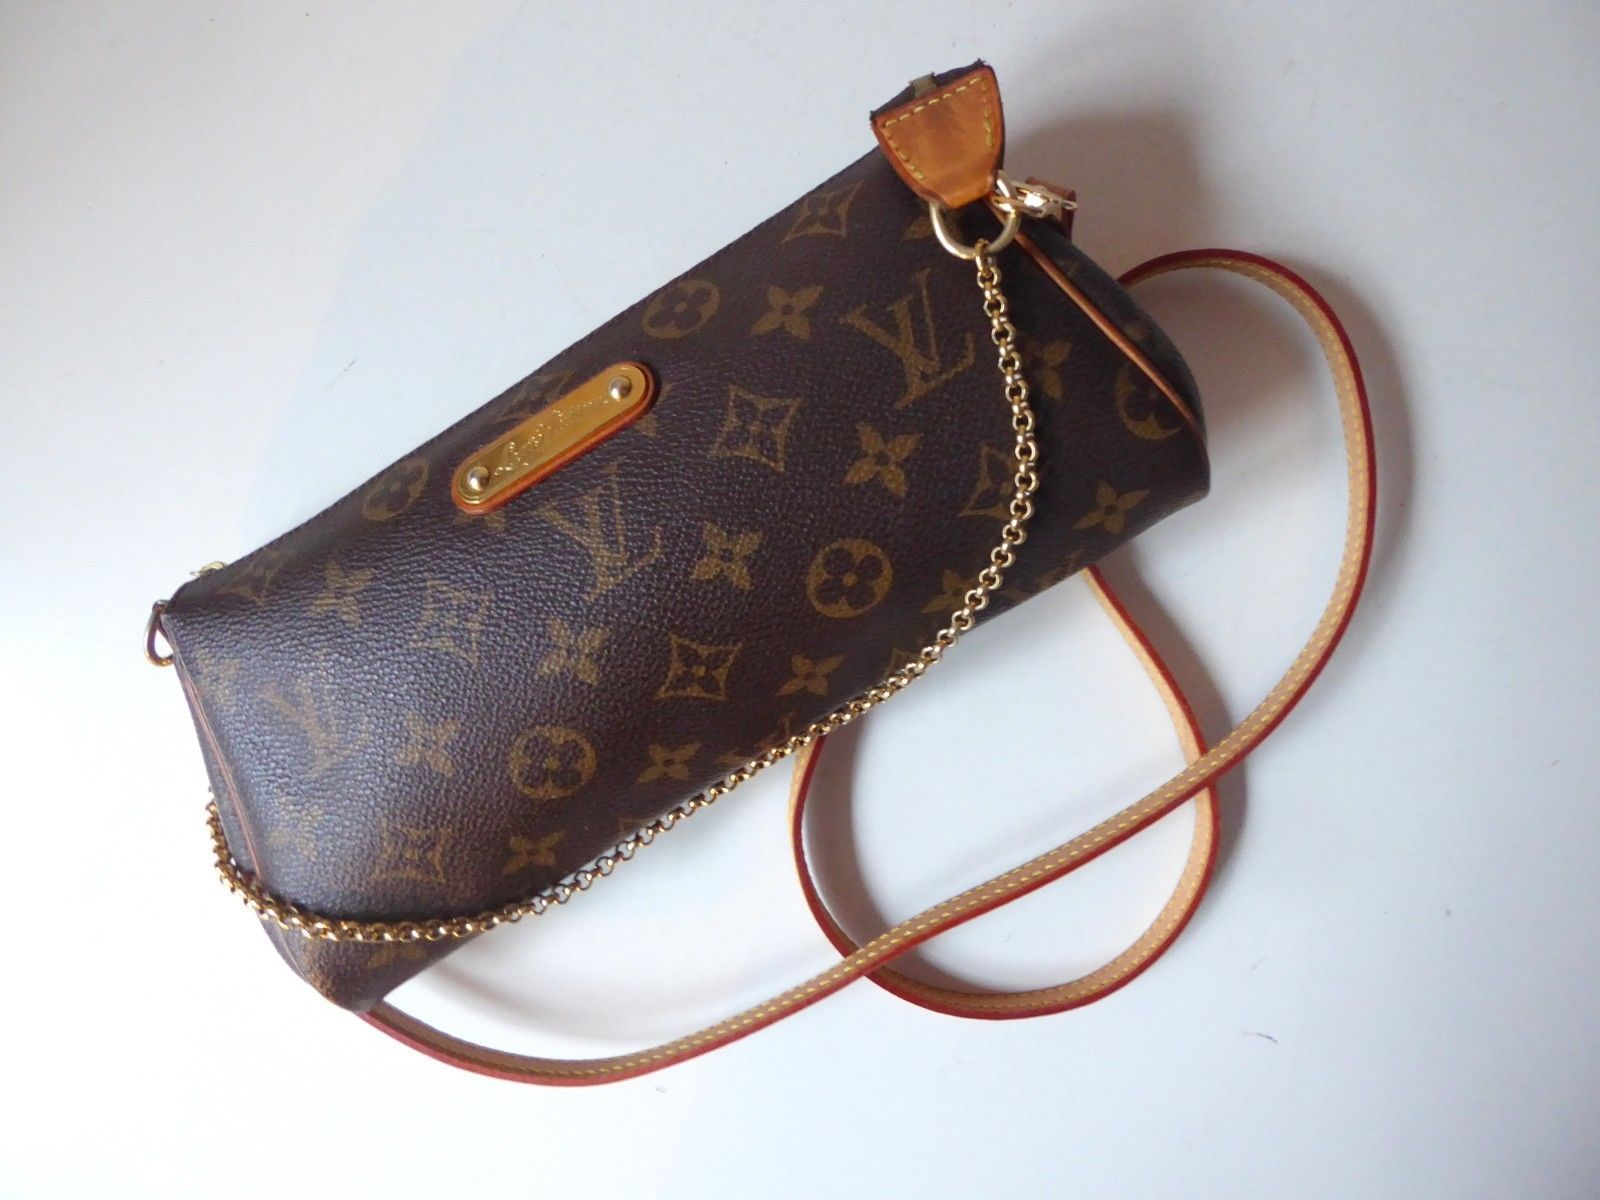 06524089544f Details about Louis Vuitton CrossBody Bag in 2019